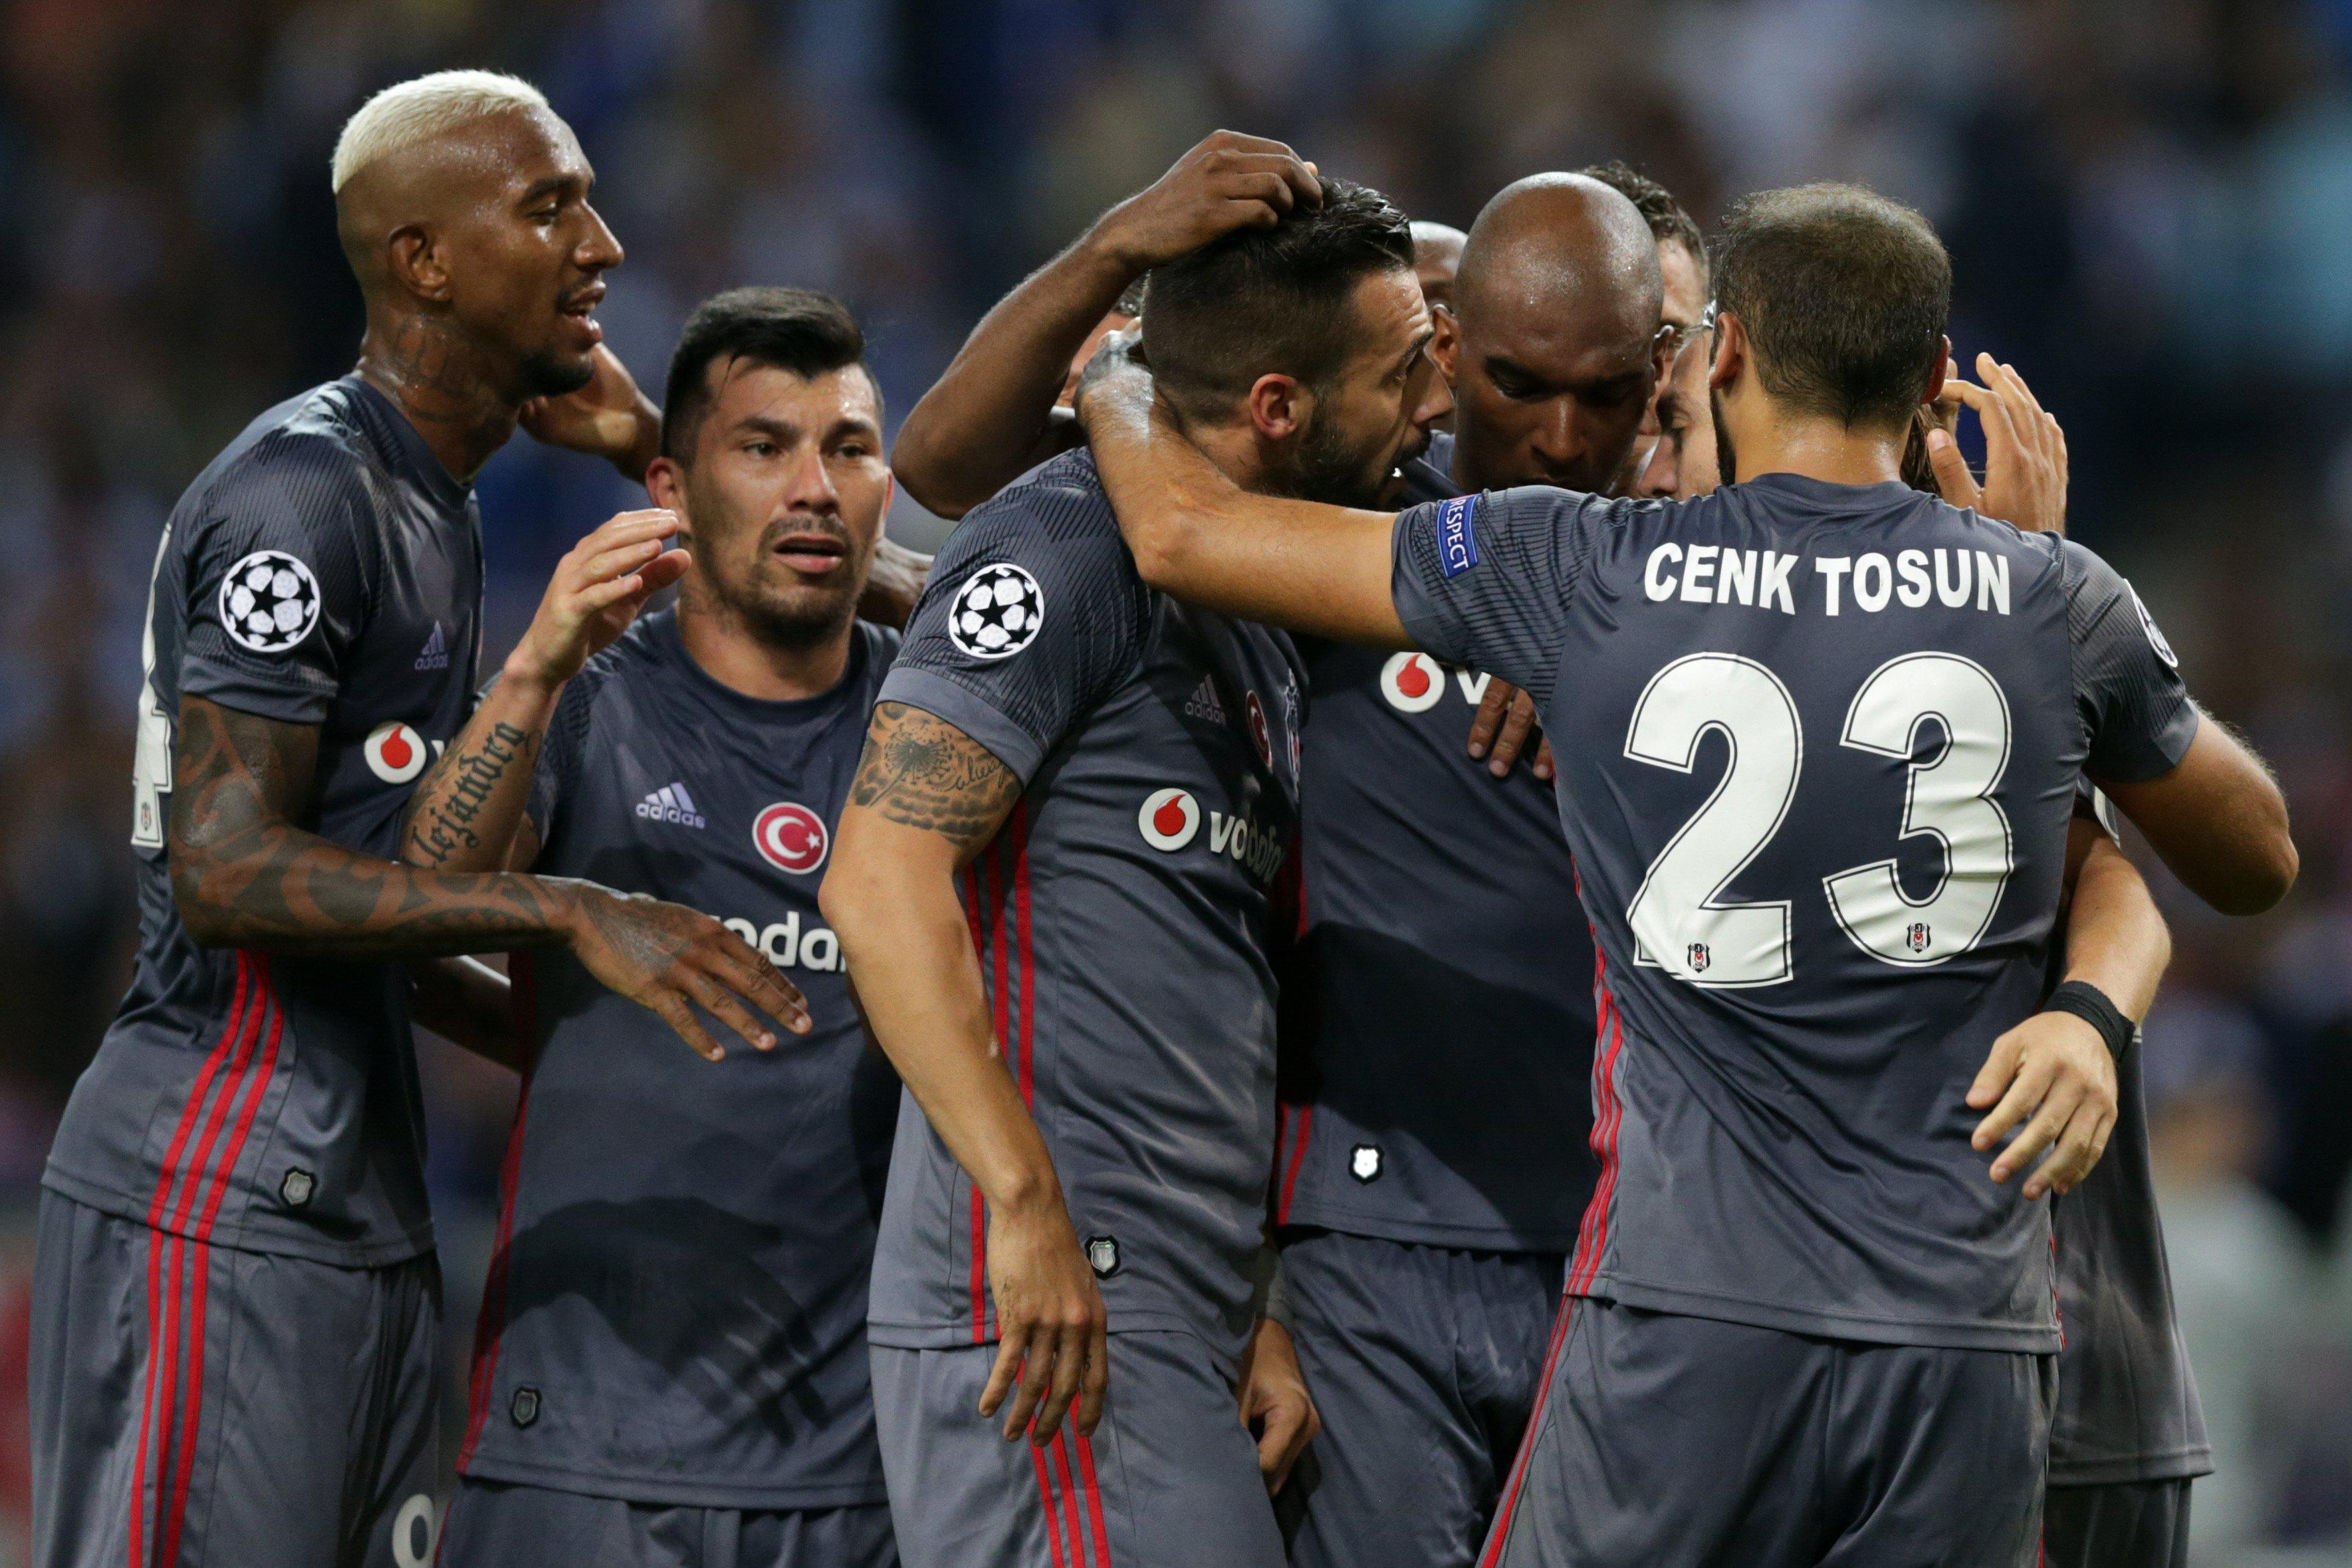 Besiktas earned a rare away victory in European competition